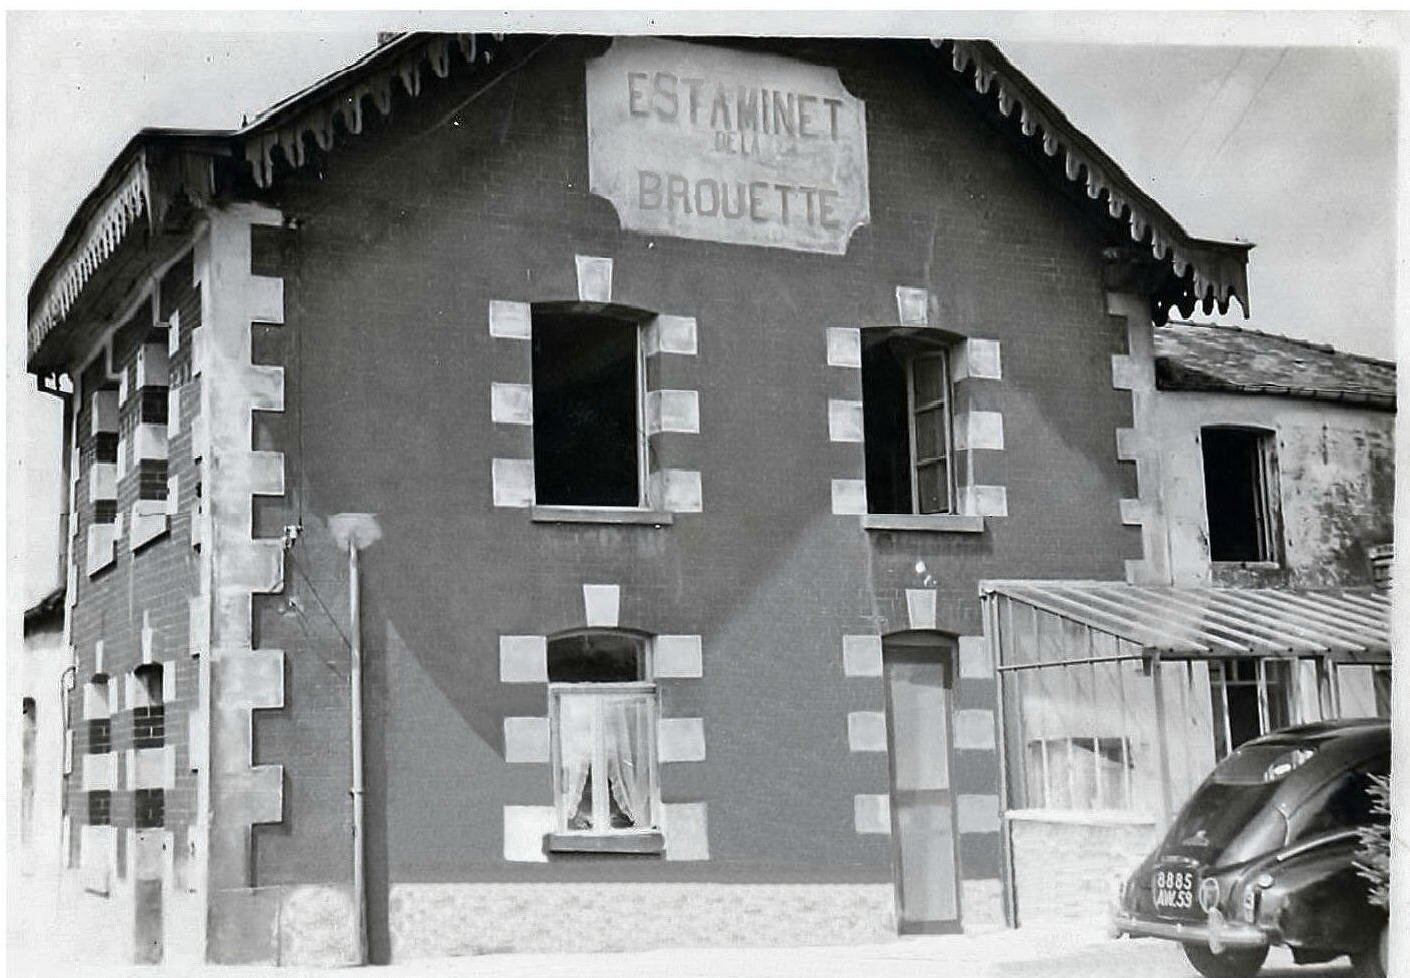 TRELON'Estaminet de la Brouette 1950